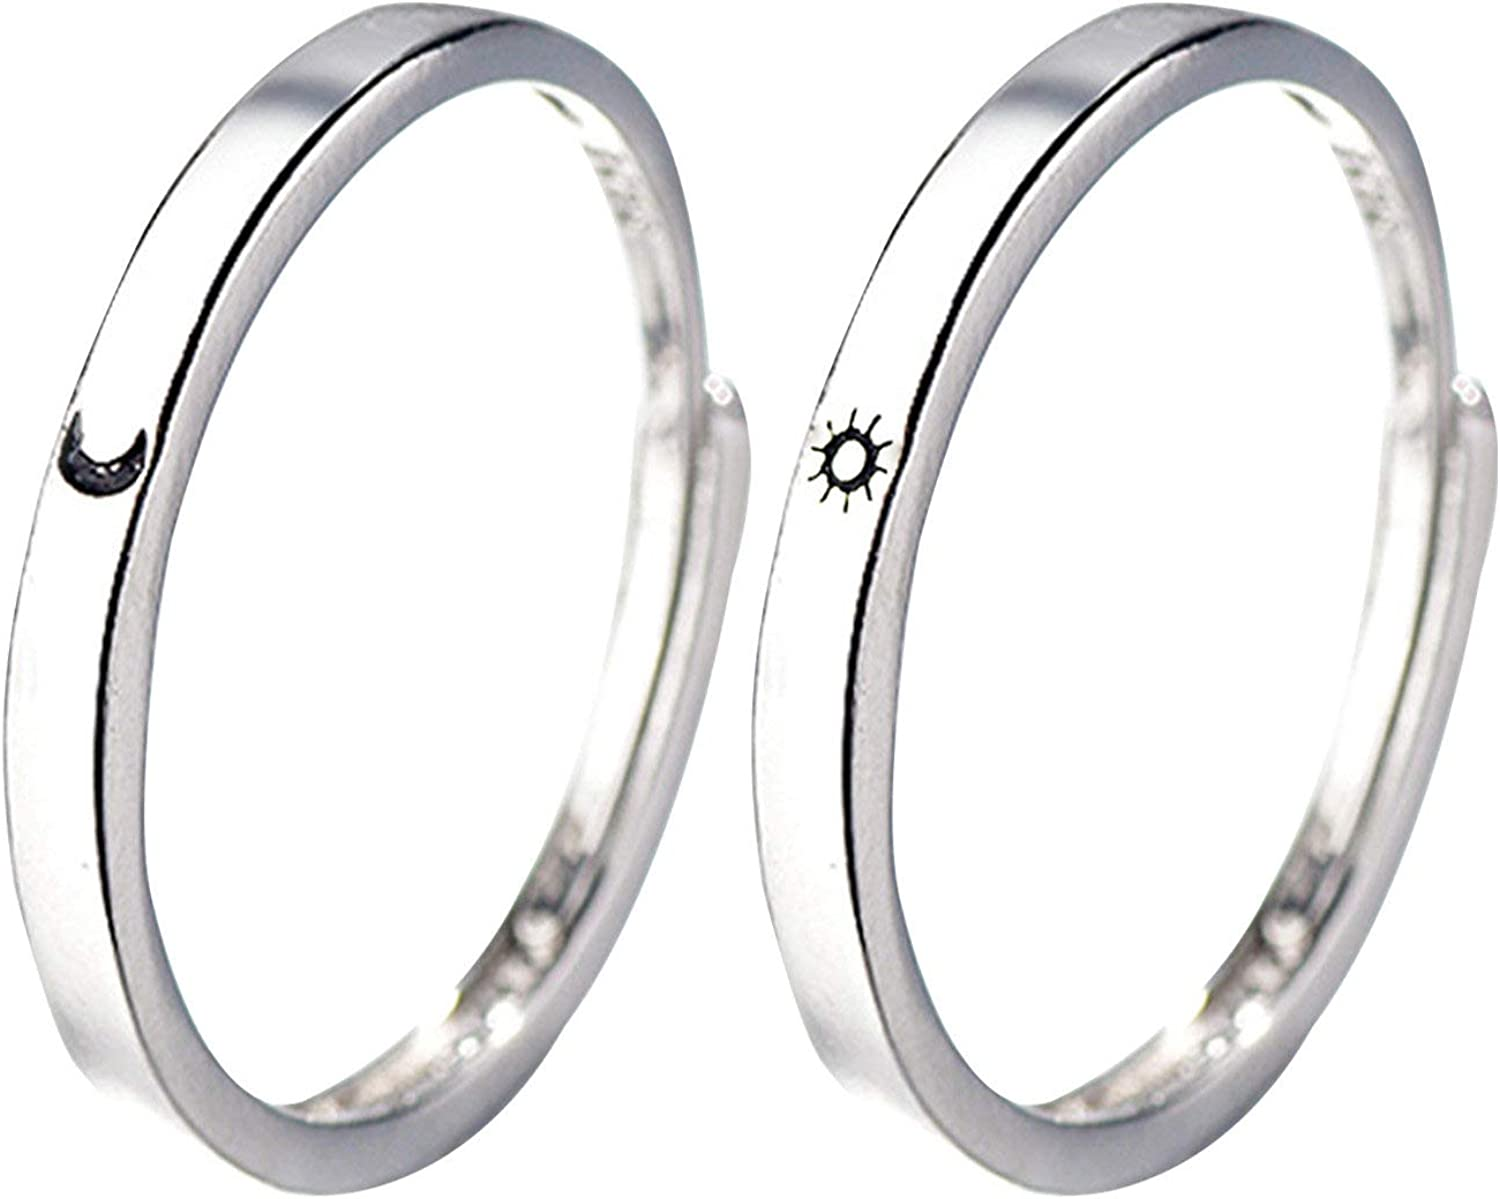 Rings, 1 Pair Anti-scratch Eye-catching Sun Moon Rings Adjustable Opening Copper Couples Promise Wedding Rings for Daily Wear Anniversary Engagement